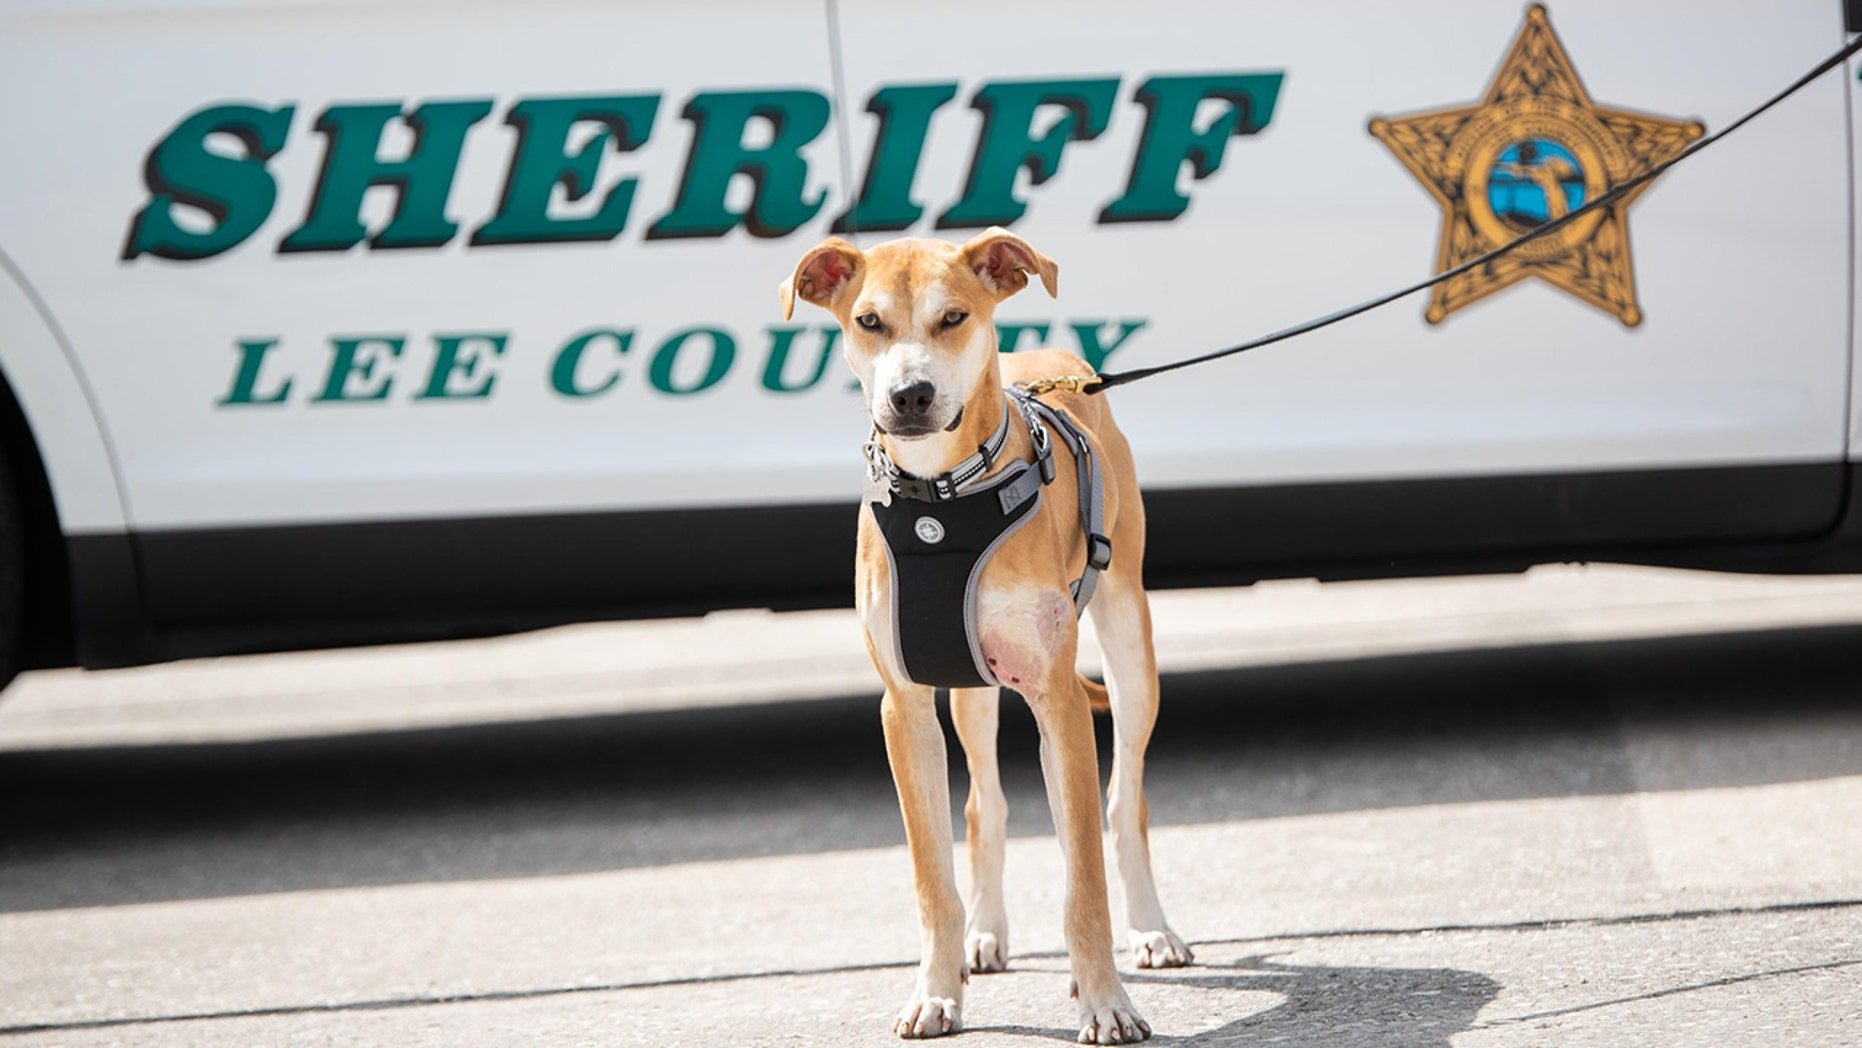 Chance, the male Florida cur found bloodied and abused last month, has been adopted by a Florida sheriff and made into a deputy.